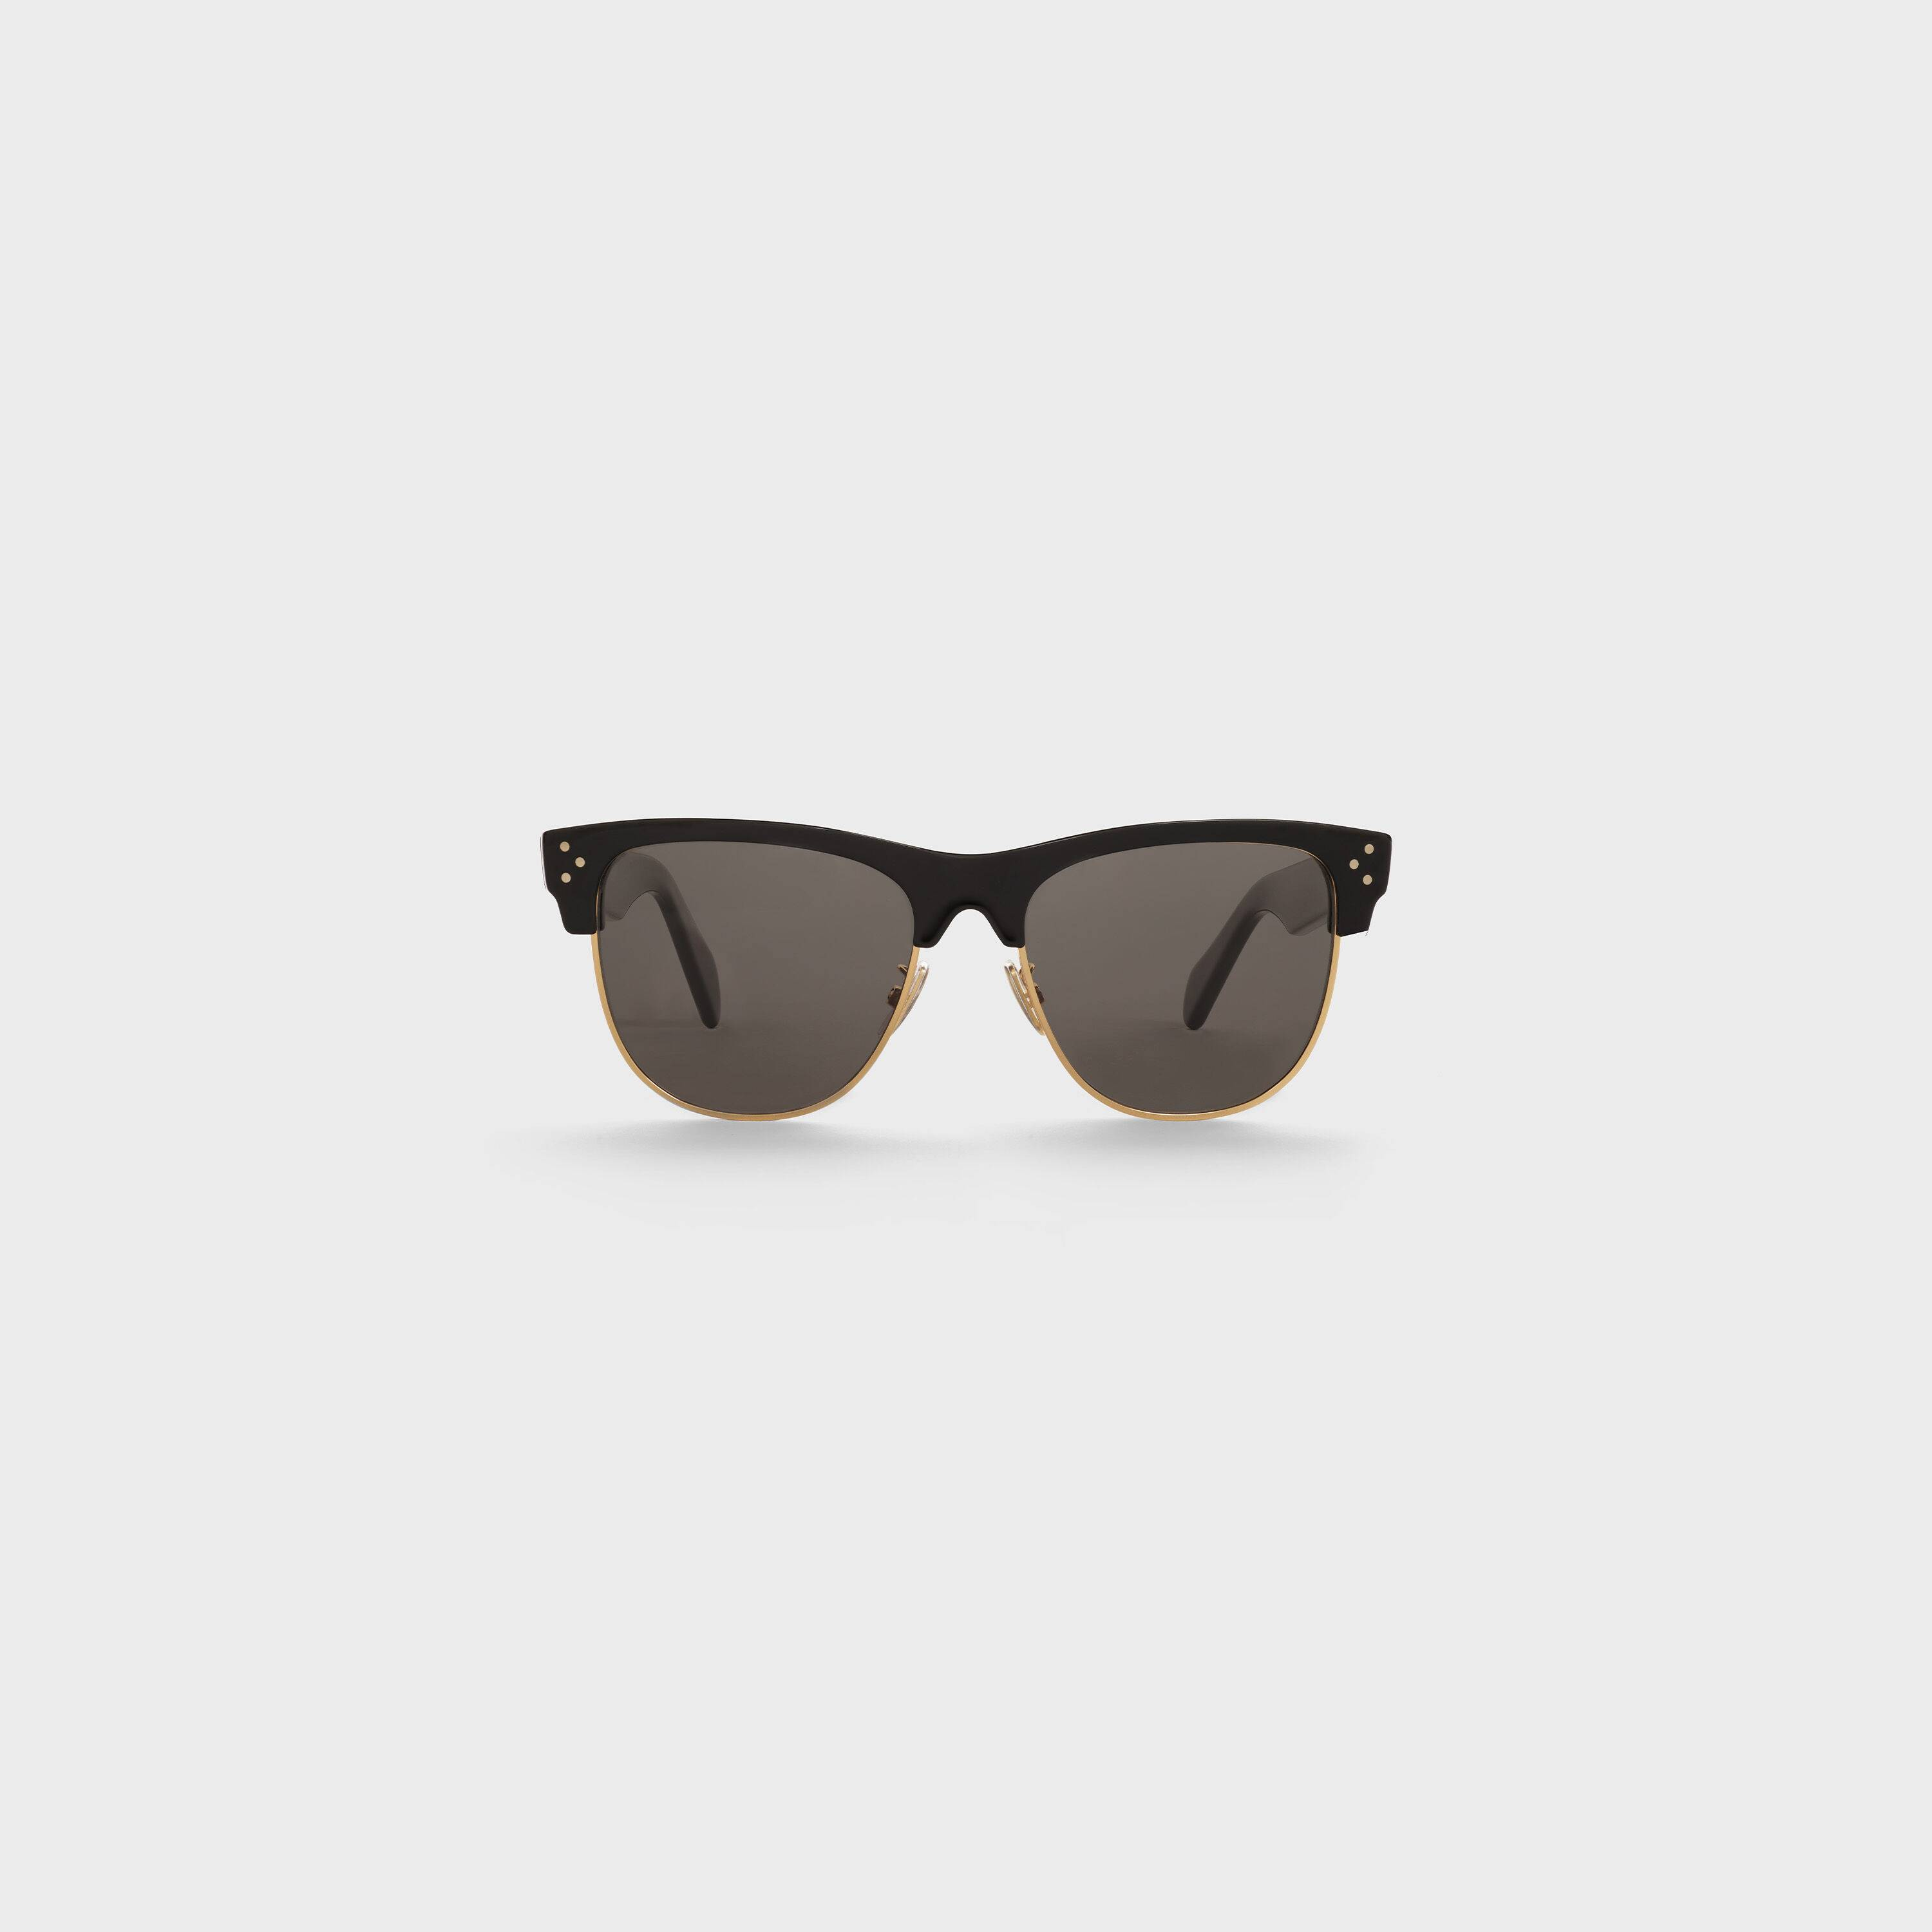 BLACK FRAME 13 SUNGLASSES IN ACETATE AND METAL by Celine, available on celine.com for $490 Karlie Kloss Sunglasses Exact Product